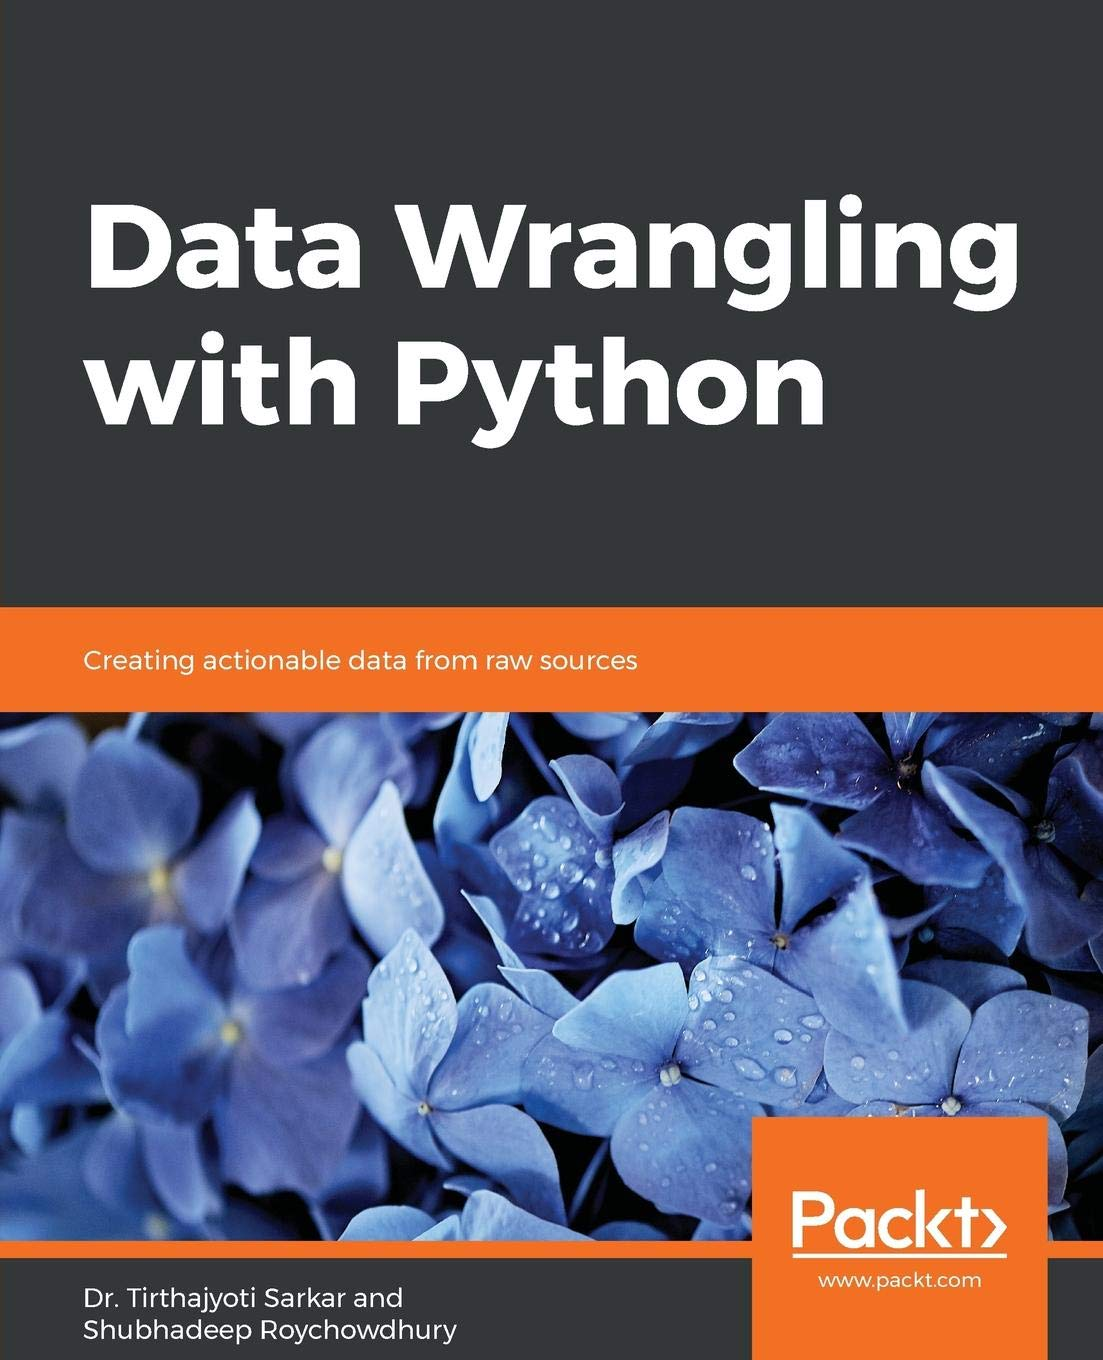 Data Wrangling with Python: Creating actionable data from